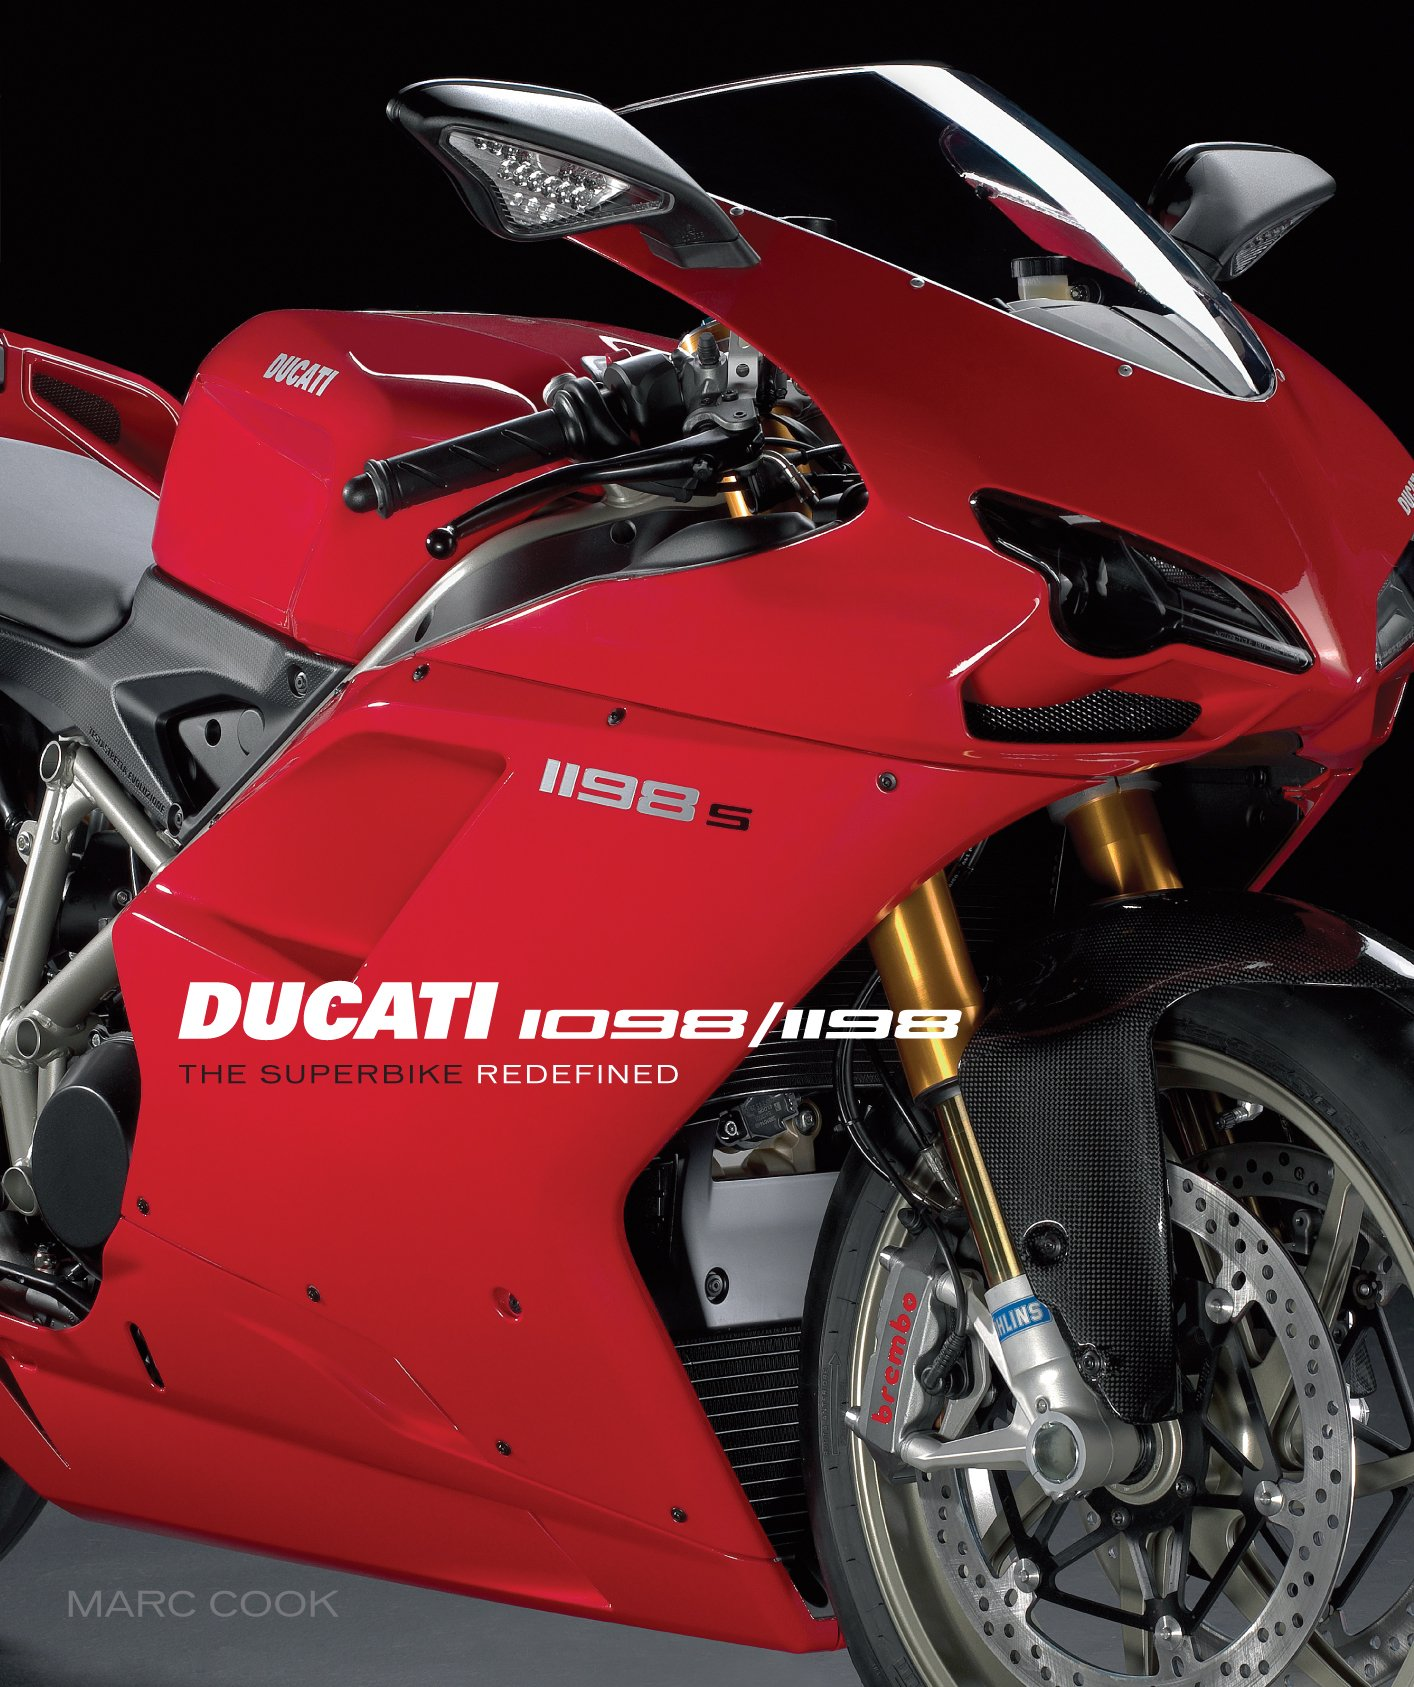 1198 >> Ducati 1098 1198 The Superbike Redefined Marc Cook 9781935007067